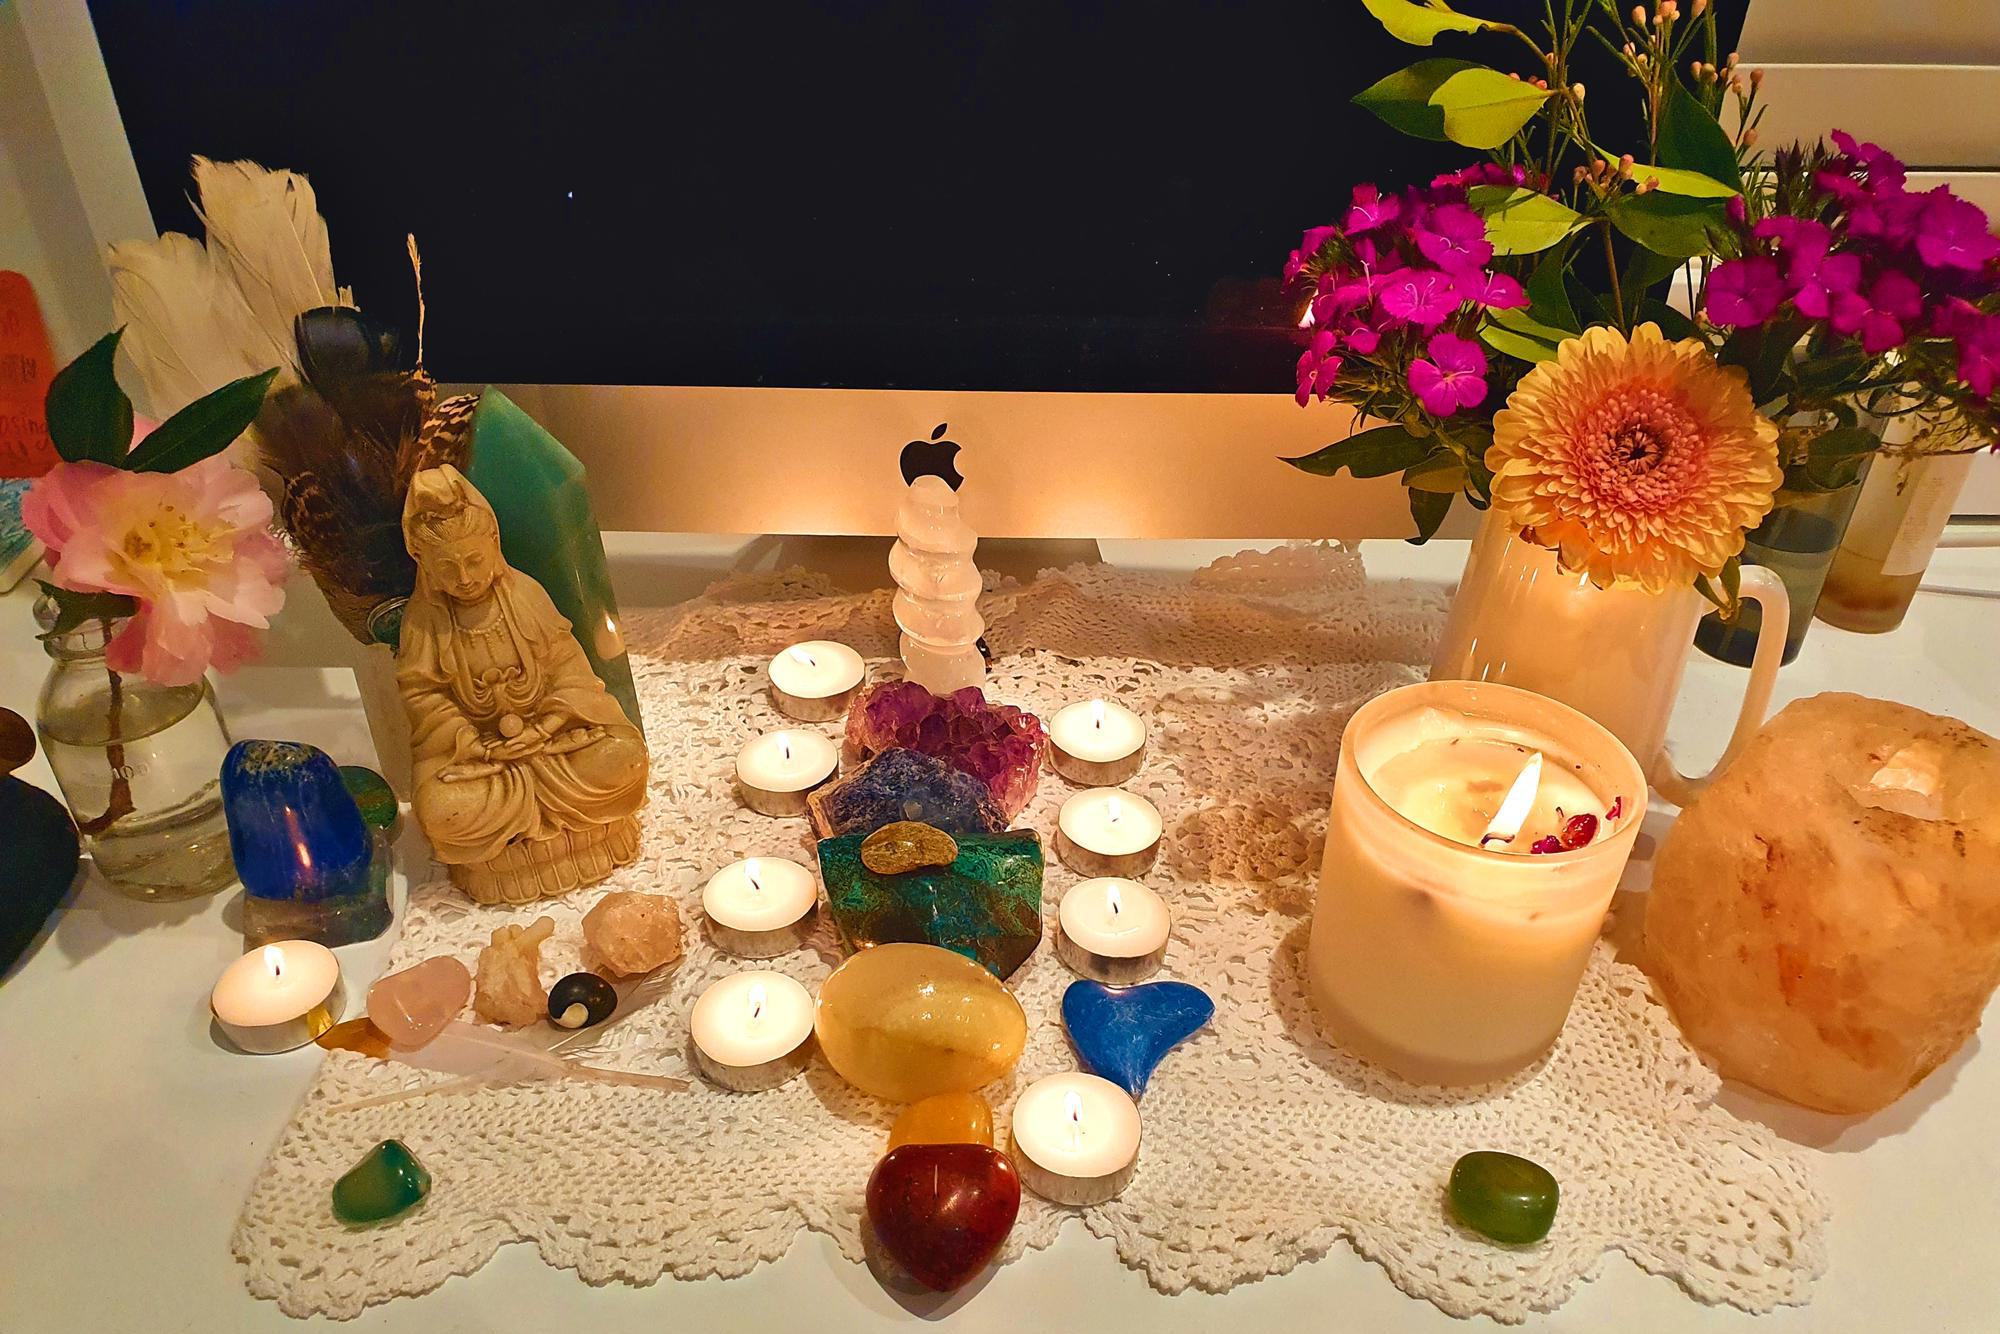 Meditation decorations in front of computer